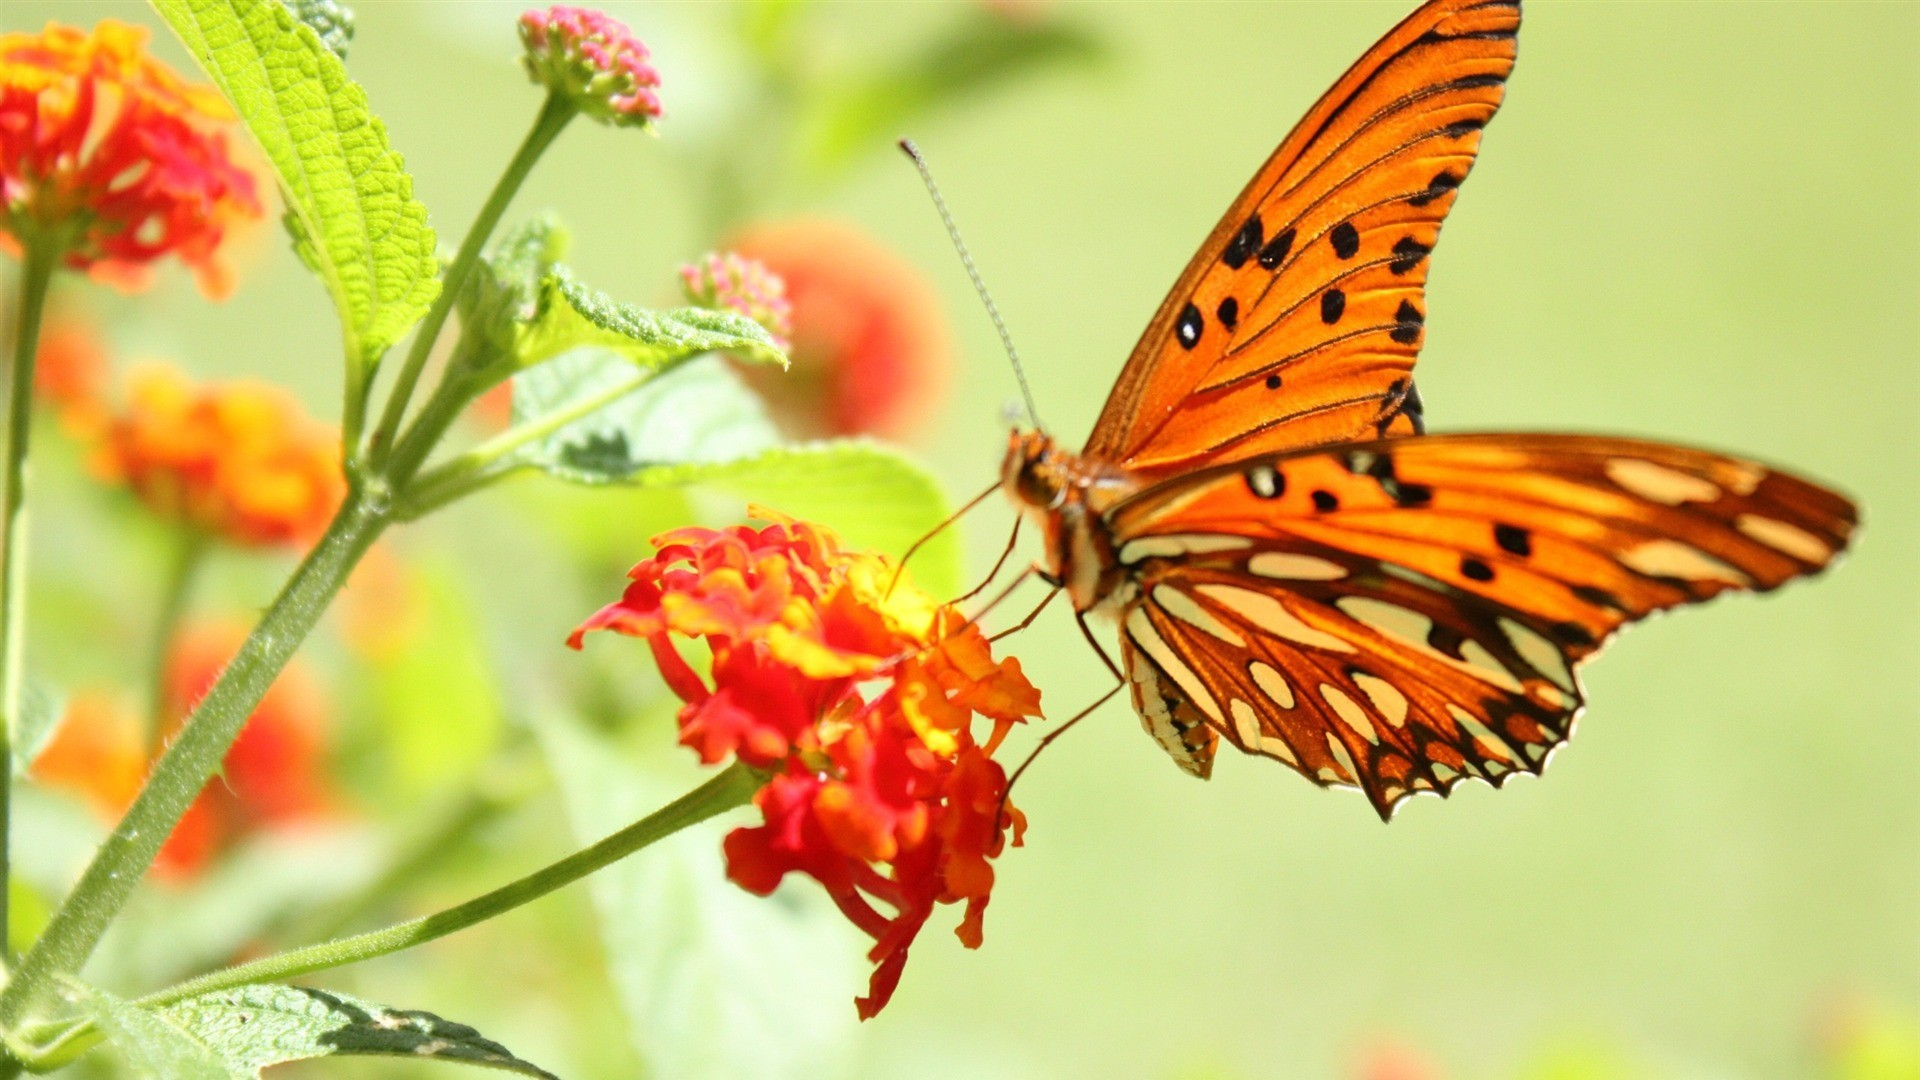 HD butterfly hd wallpapers 1080p For Your Image Wallpapers with .